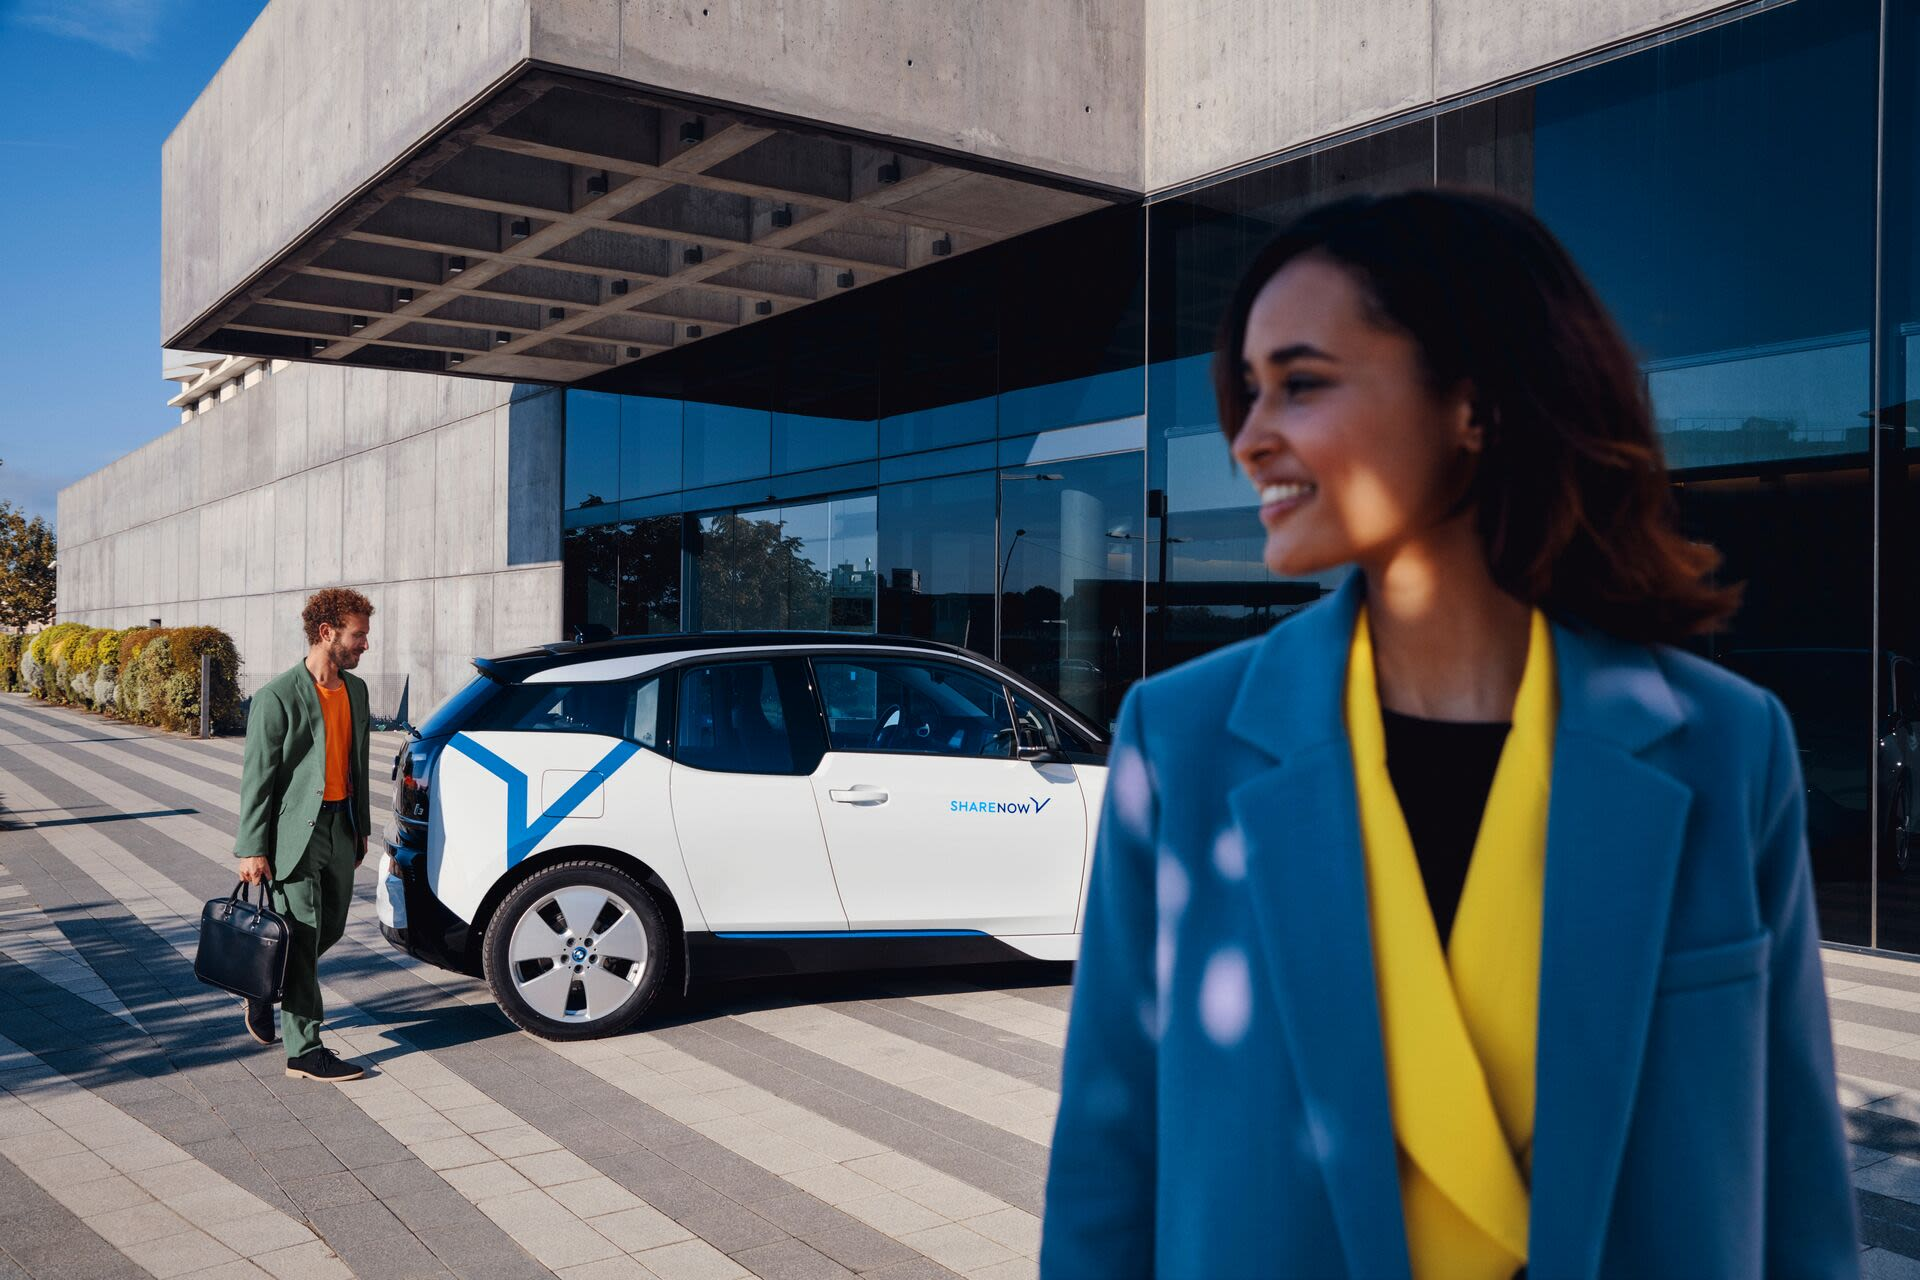 Image BMW i3 corporate SHARE NOW business